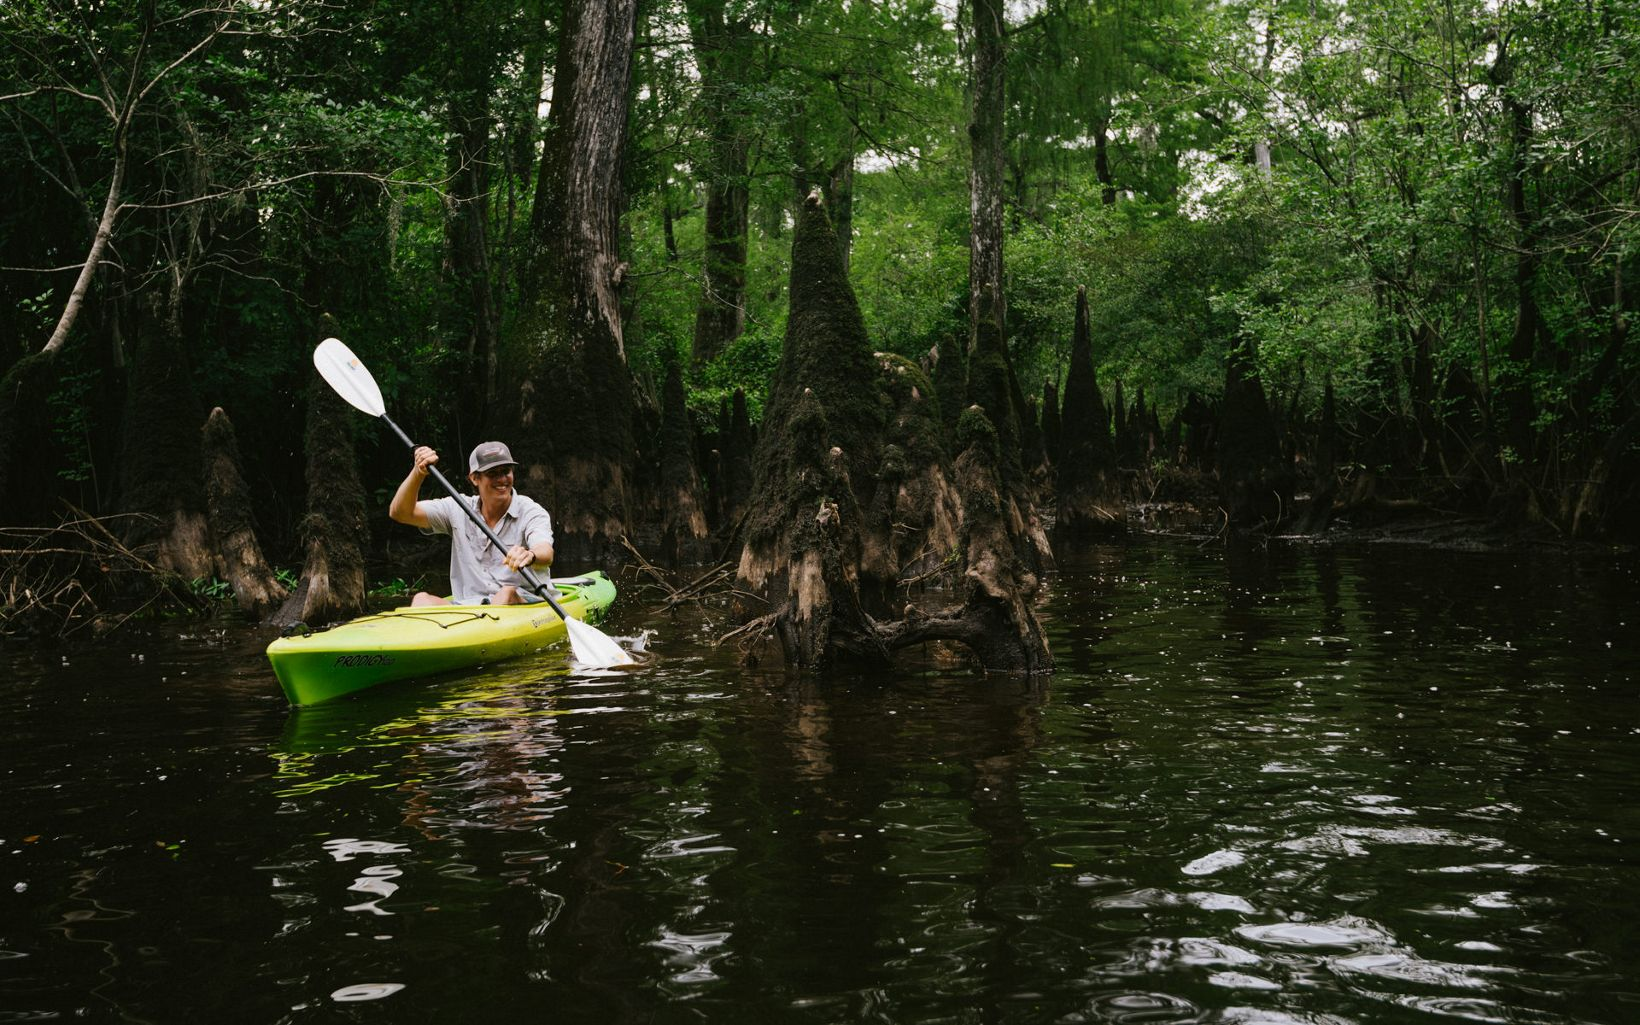 Paddling on the Black River.